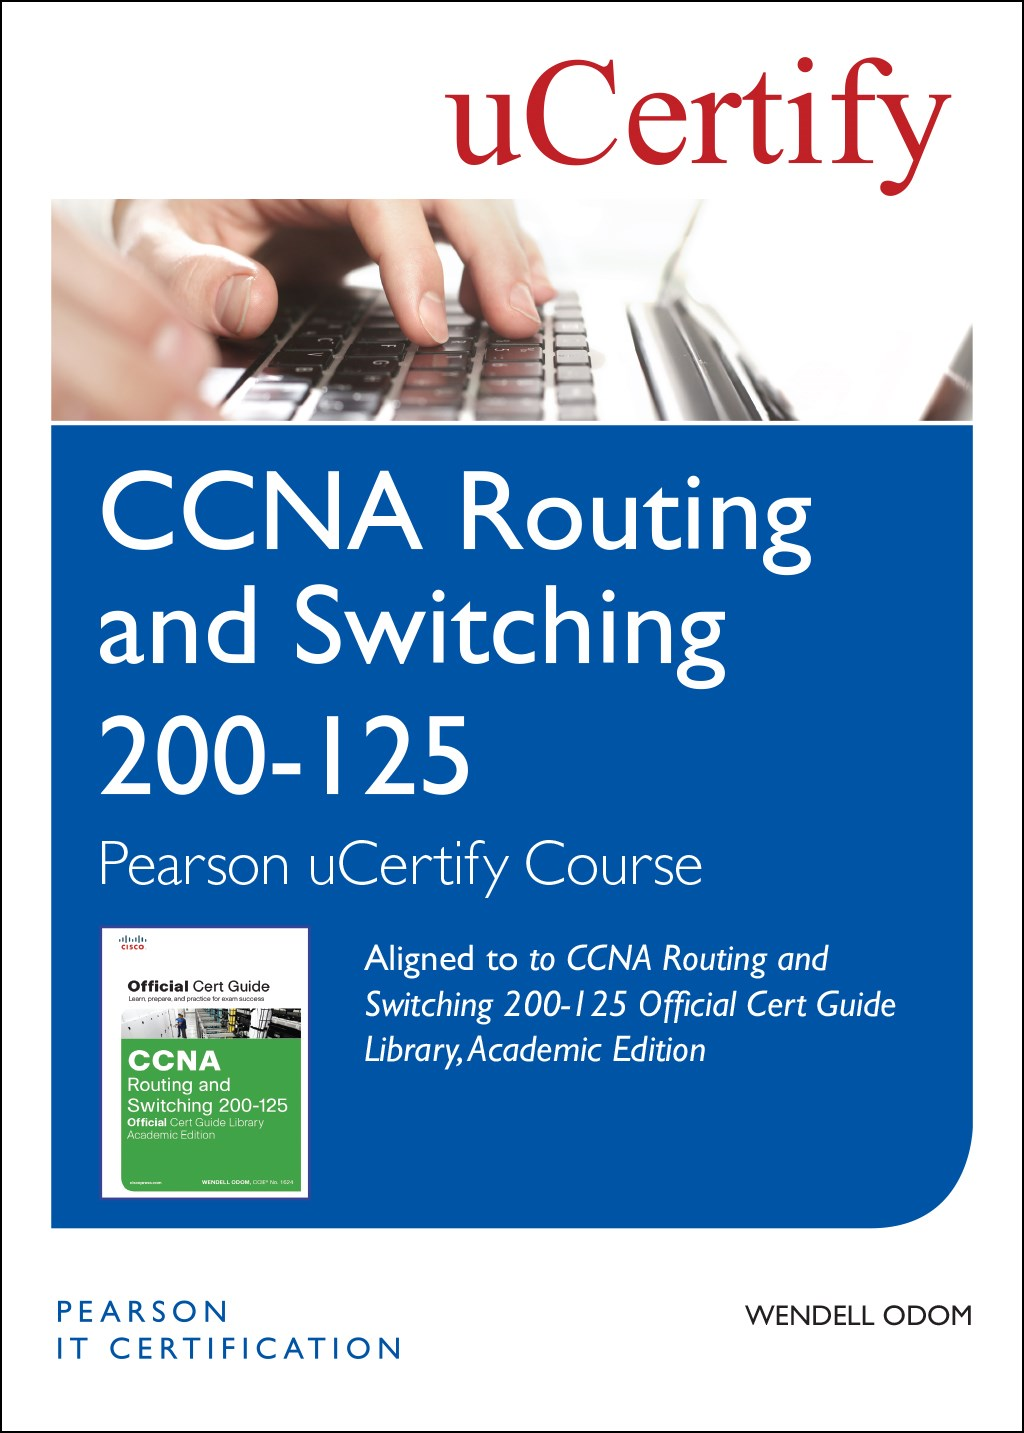 CCNA Routing and Switching 200-125 Official Cert Guide Library, Academic Edition Pearson uCertify Course Student Access Card